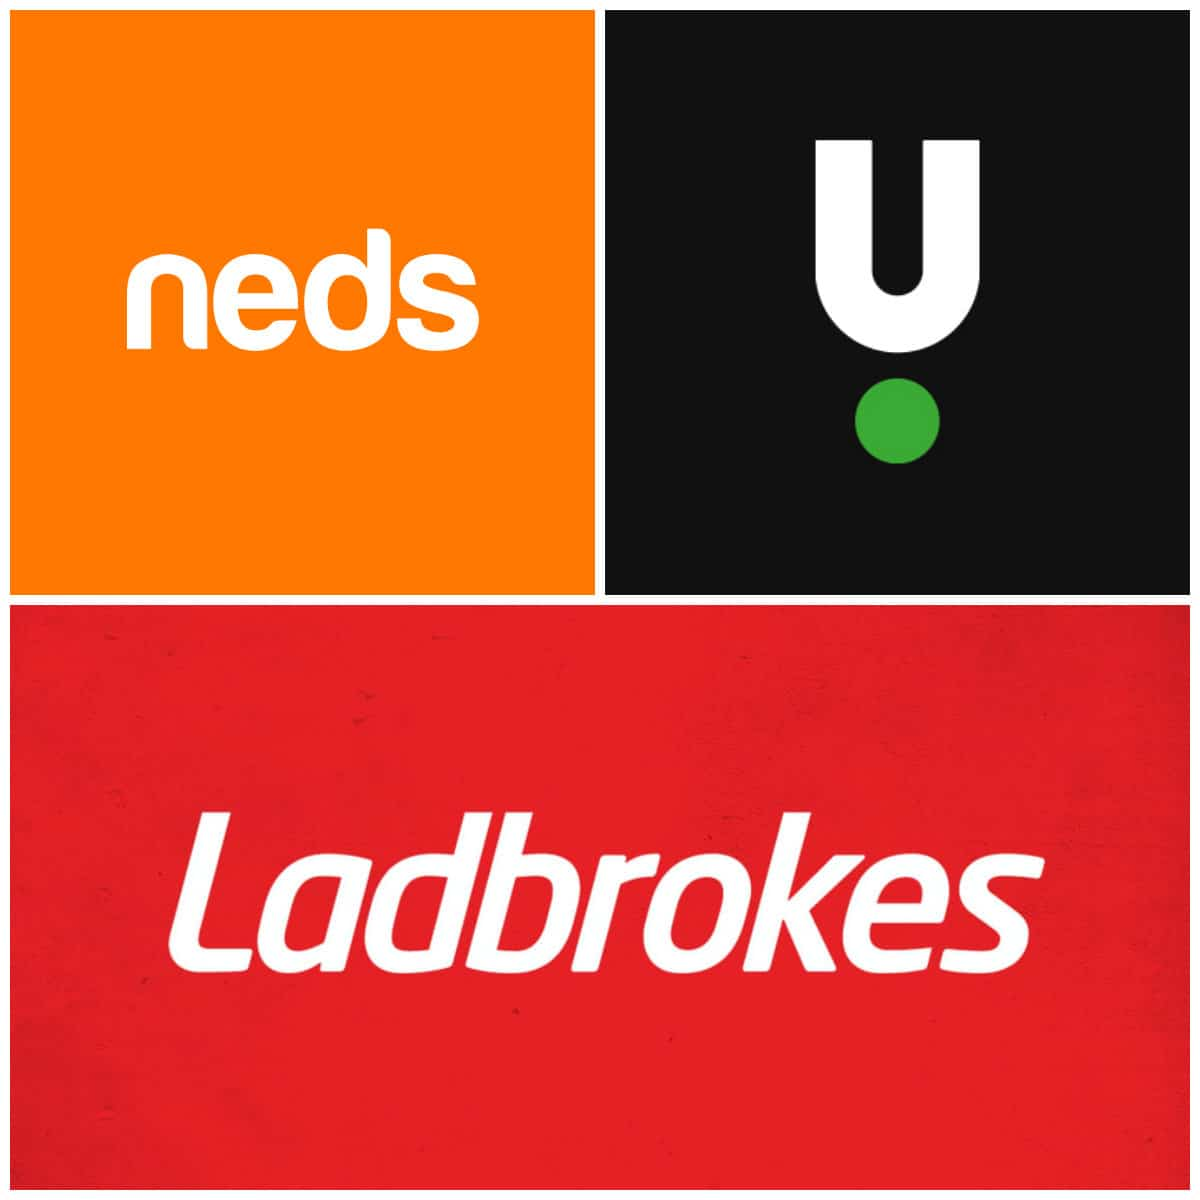 Best Australian Betting Site: Ladbrokes vs Neds vs Betfair vs Sportsbet